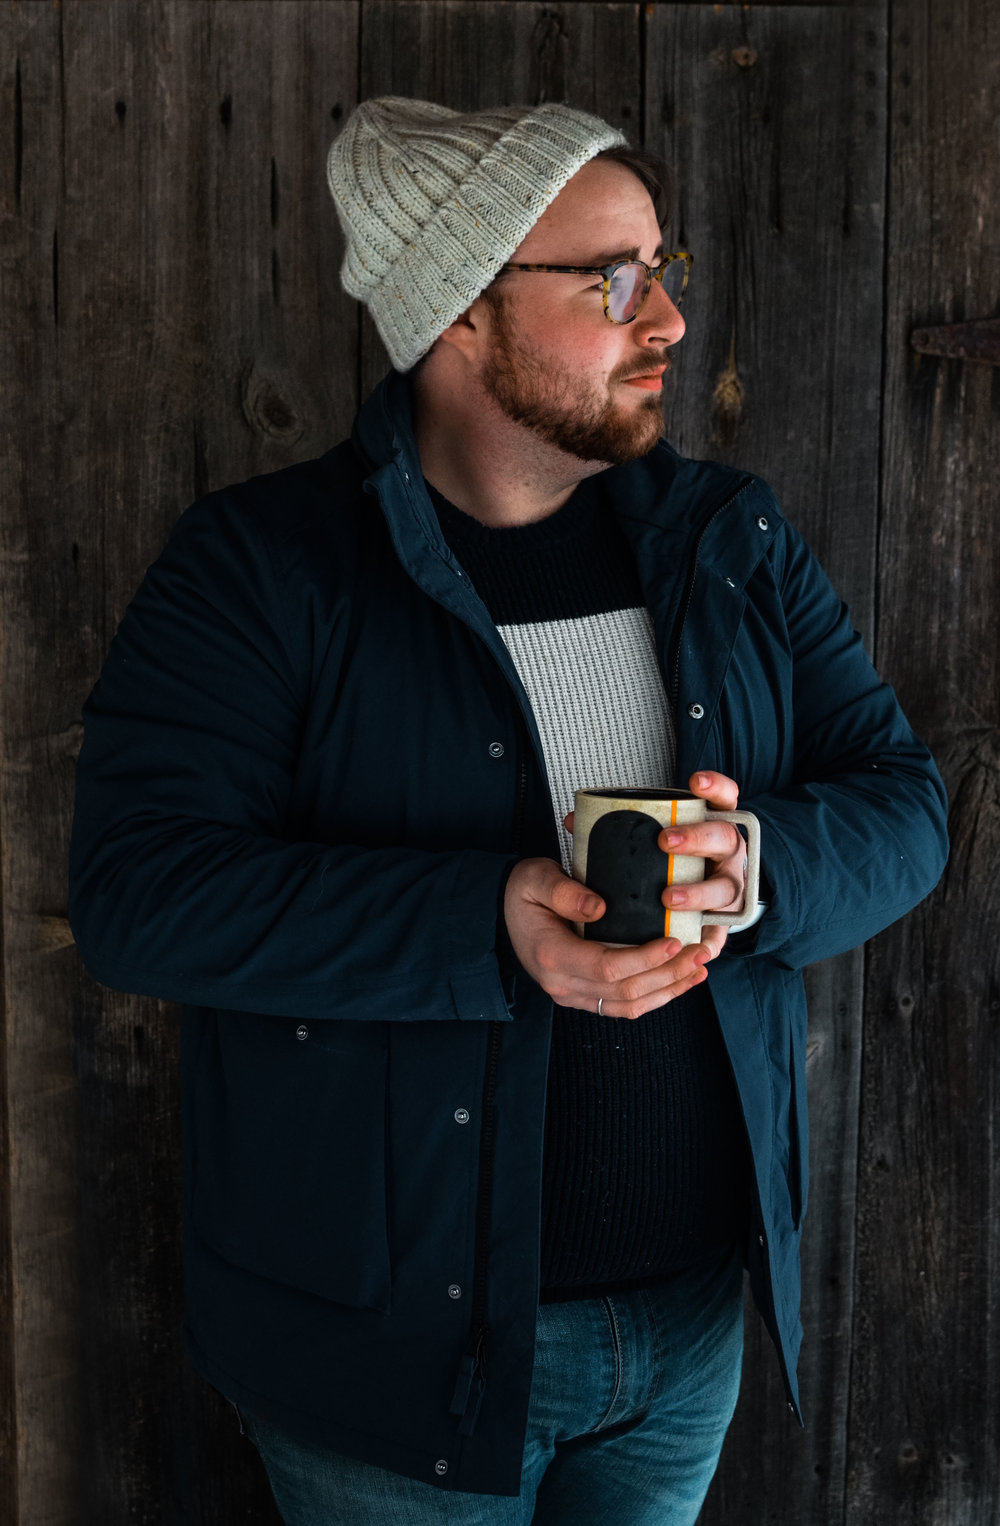 Wendling_Boyd_Field_Jacket_Huckberry_Coffee_outside_Hike-14.jpg